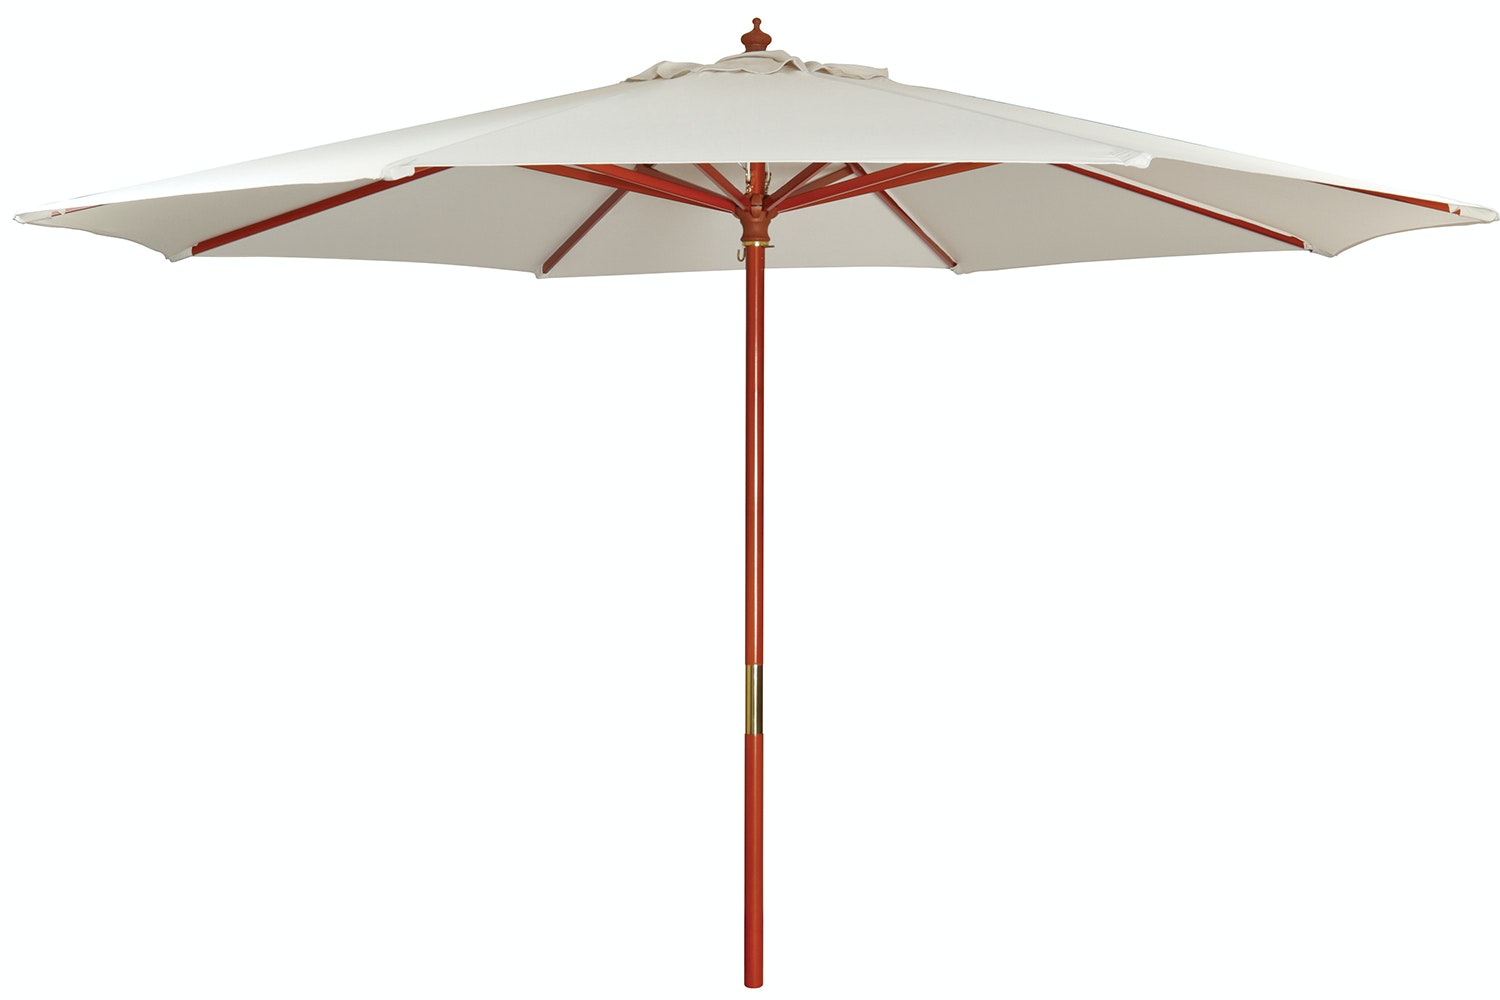 Kosmo 2.7m Natural Outdoor Umbrella by Peros